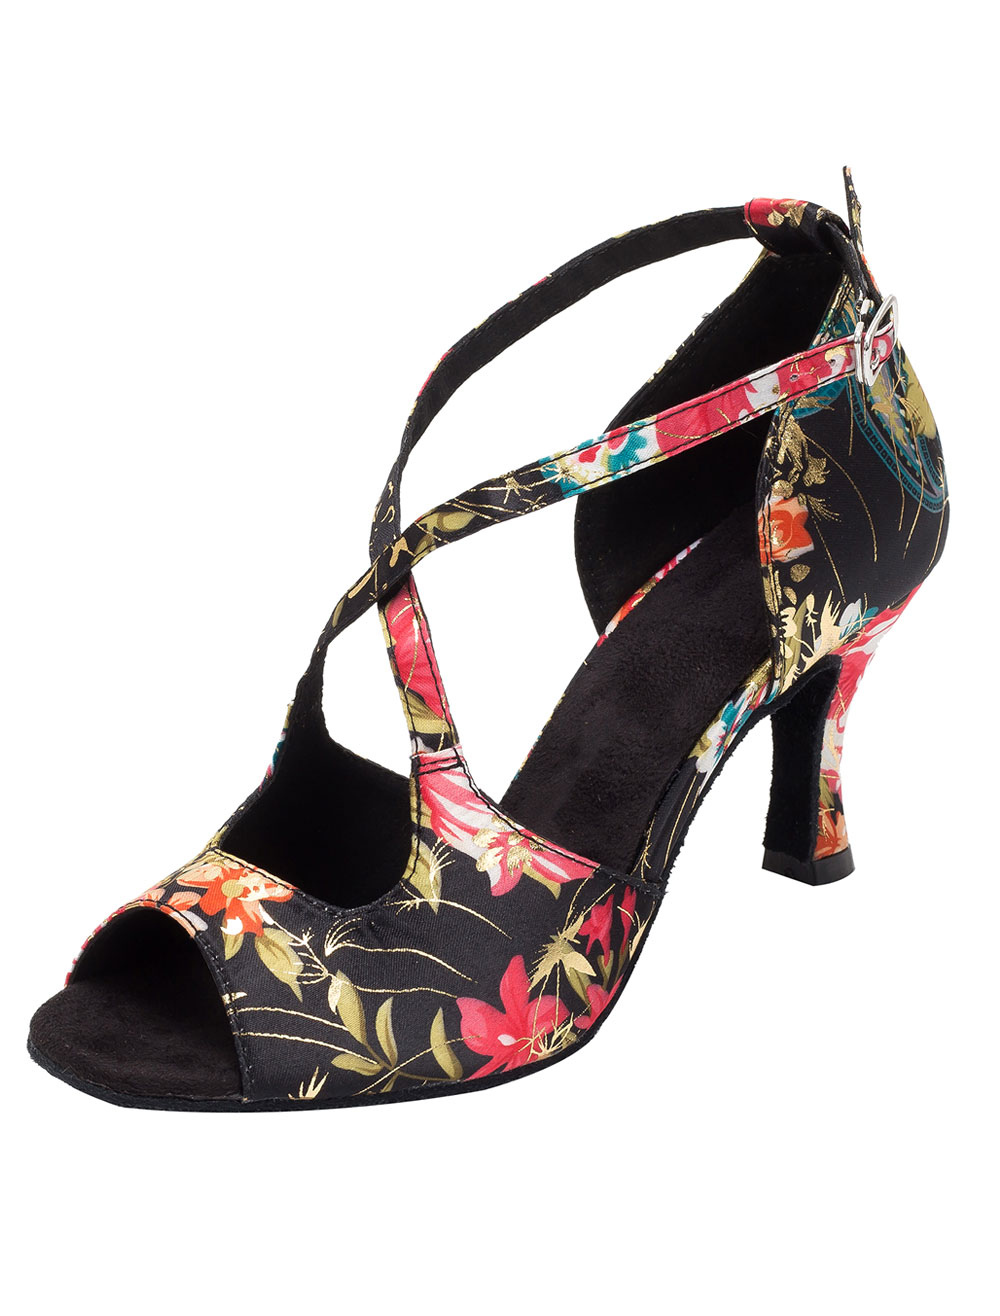 Vintage Dance Shoes Floral Printed Peep Flared Heel Strap Cross Front Ballroom Shoes For Women